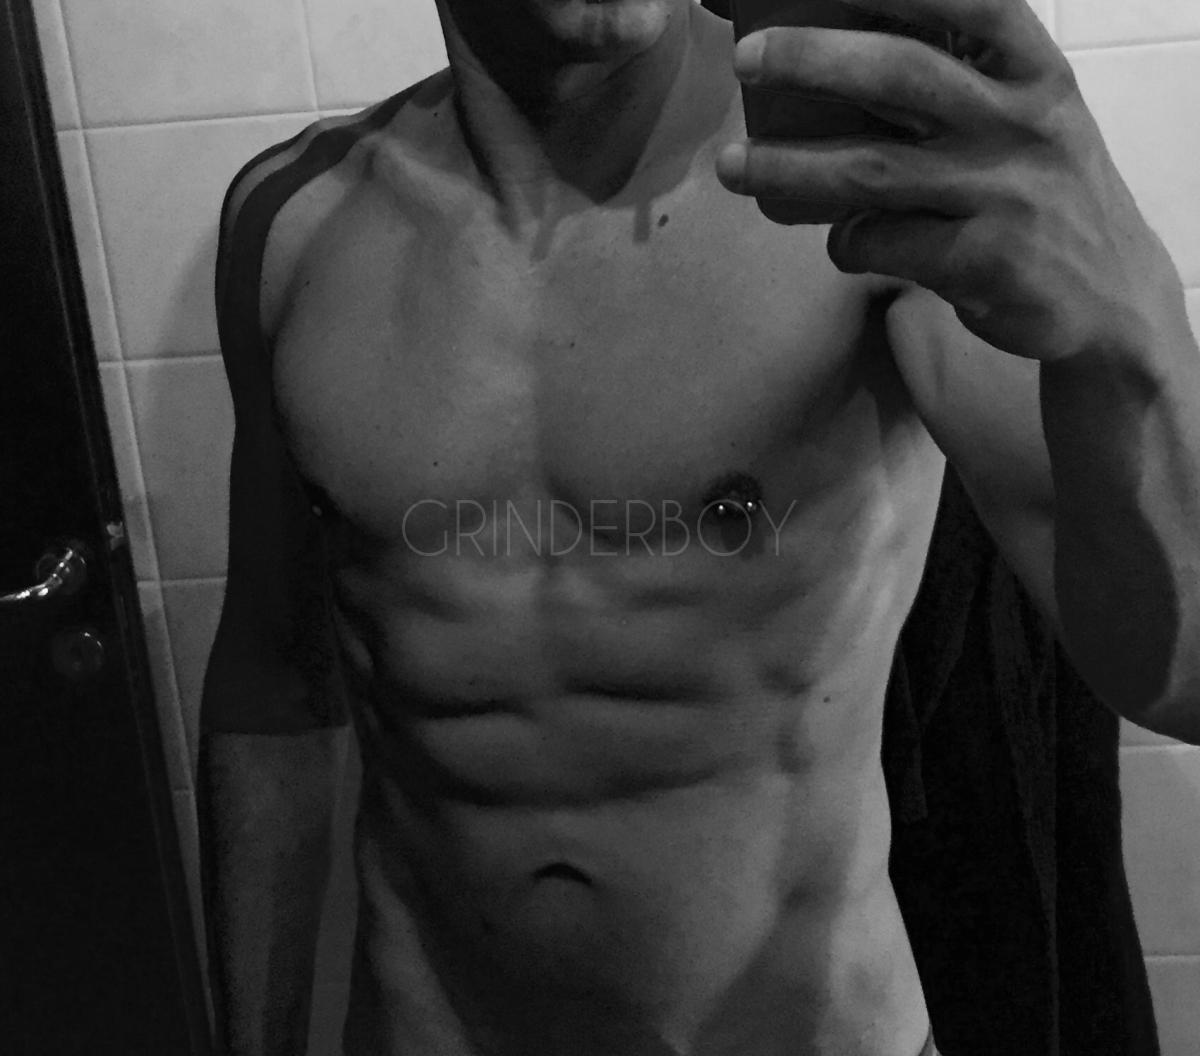 italian boy gay escort domicilio torino